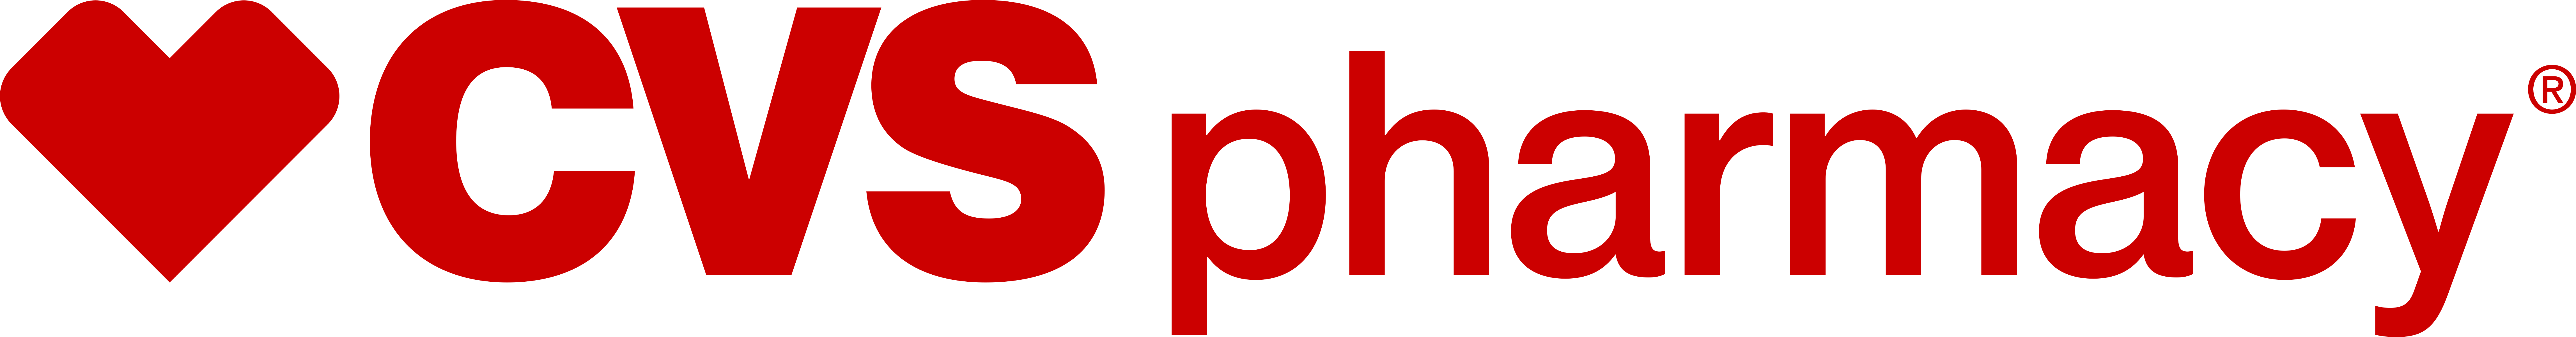 CVS Logo - CVS Pharmacy Logo | CVS Health